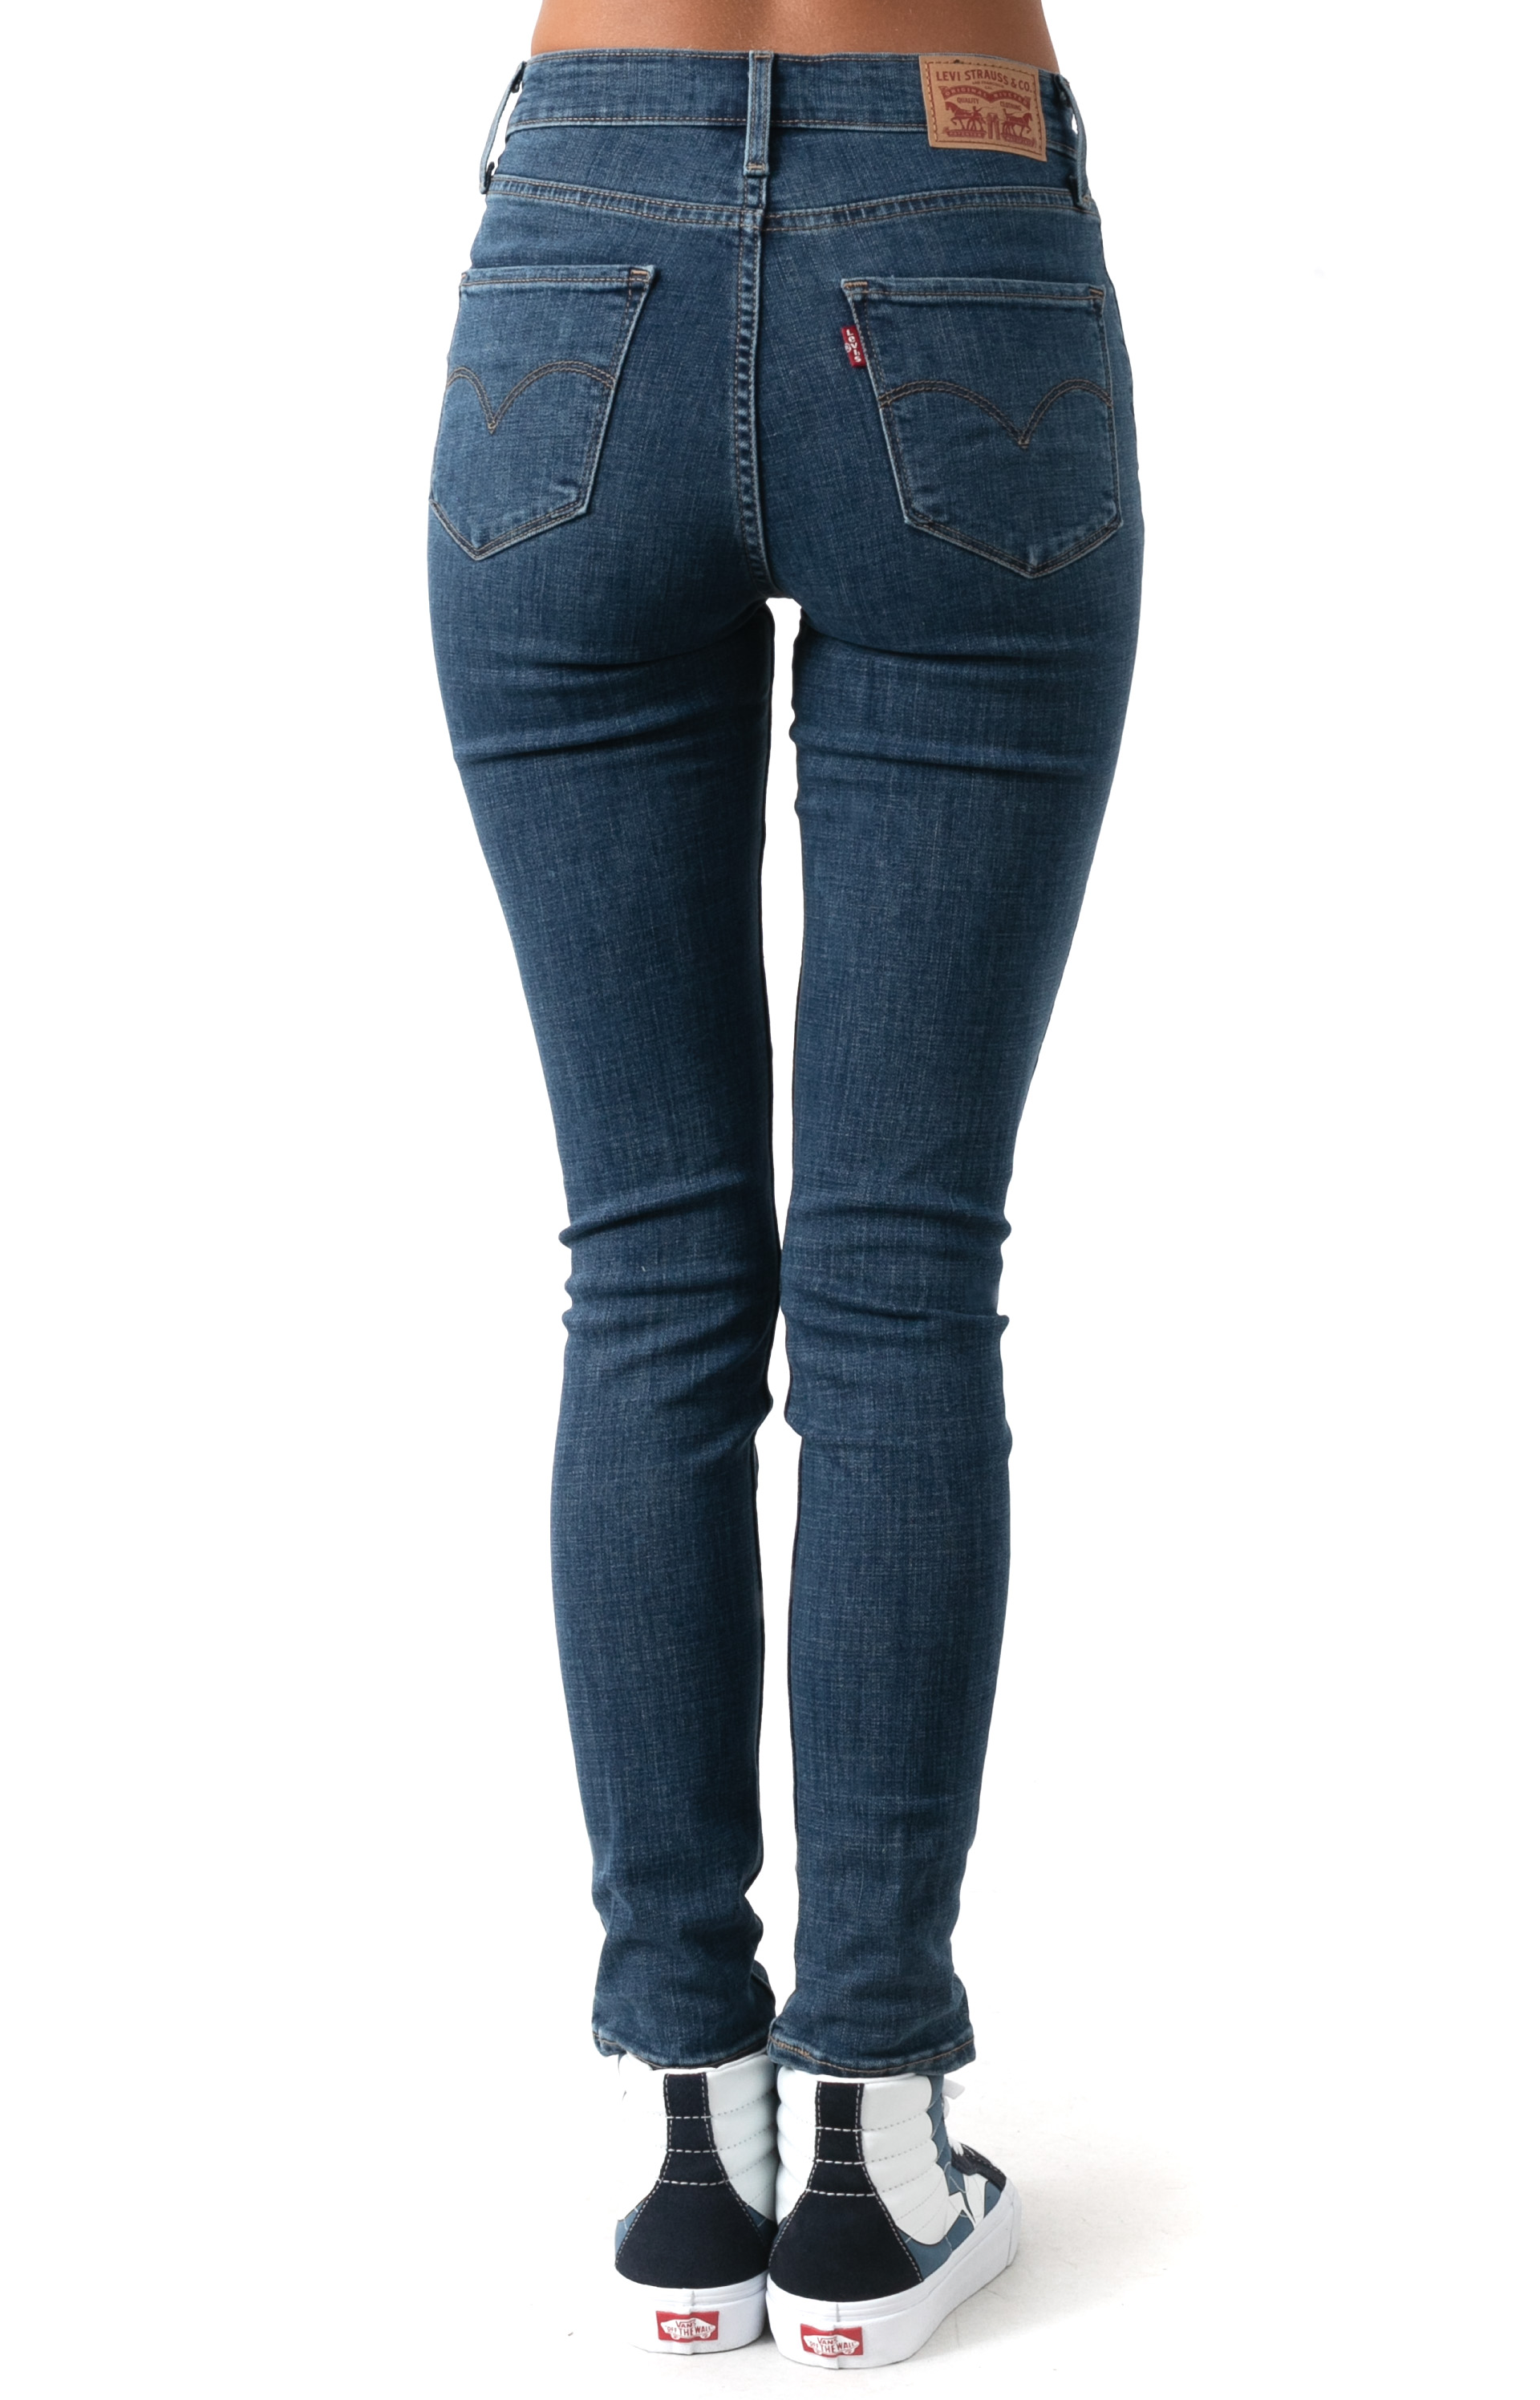 721 High Rise Skinny Jeans - Lapis Blue  3